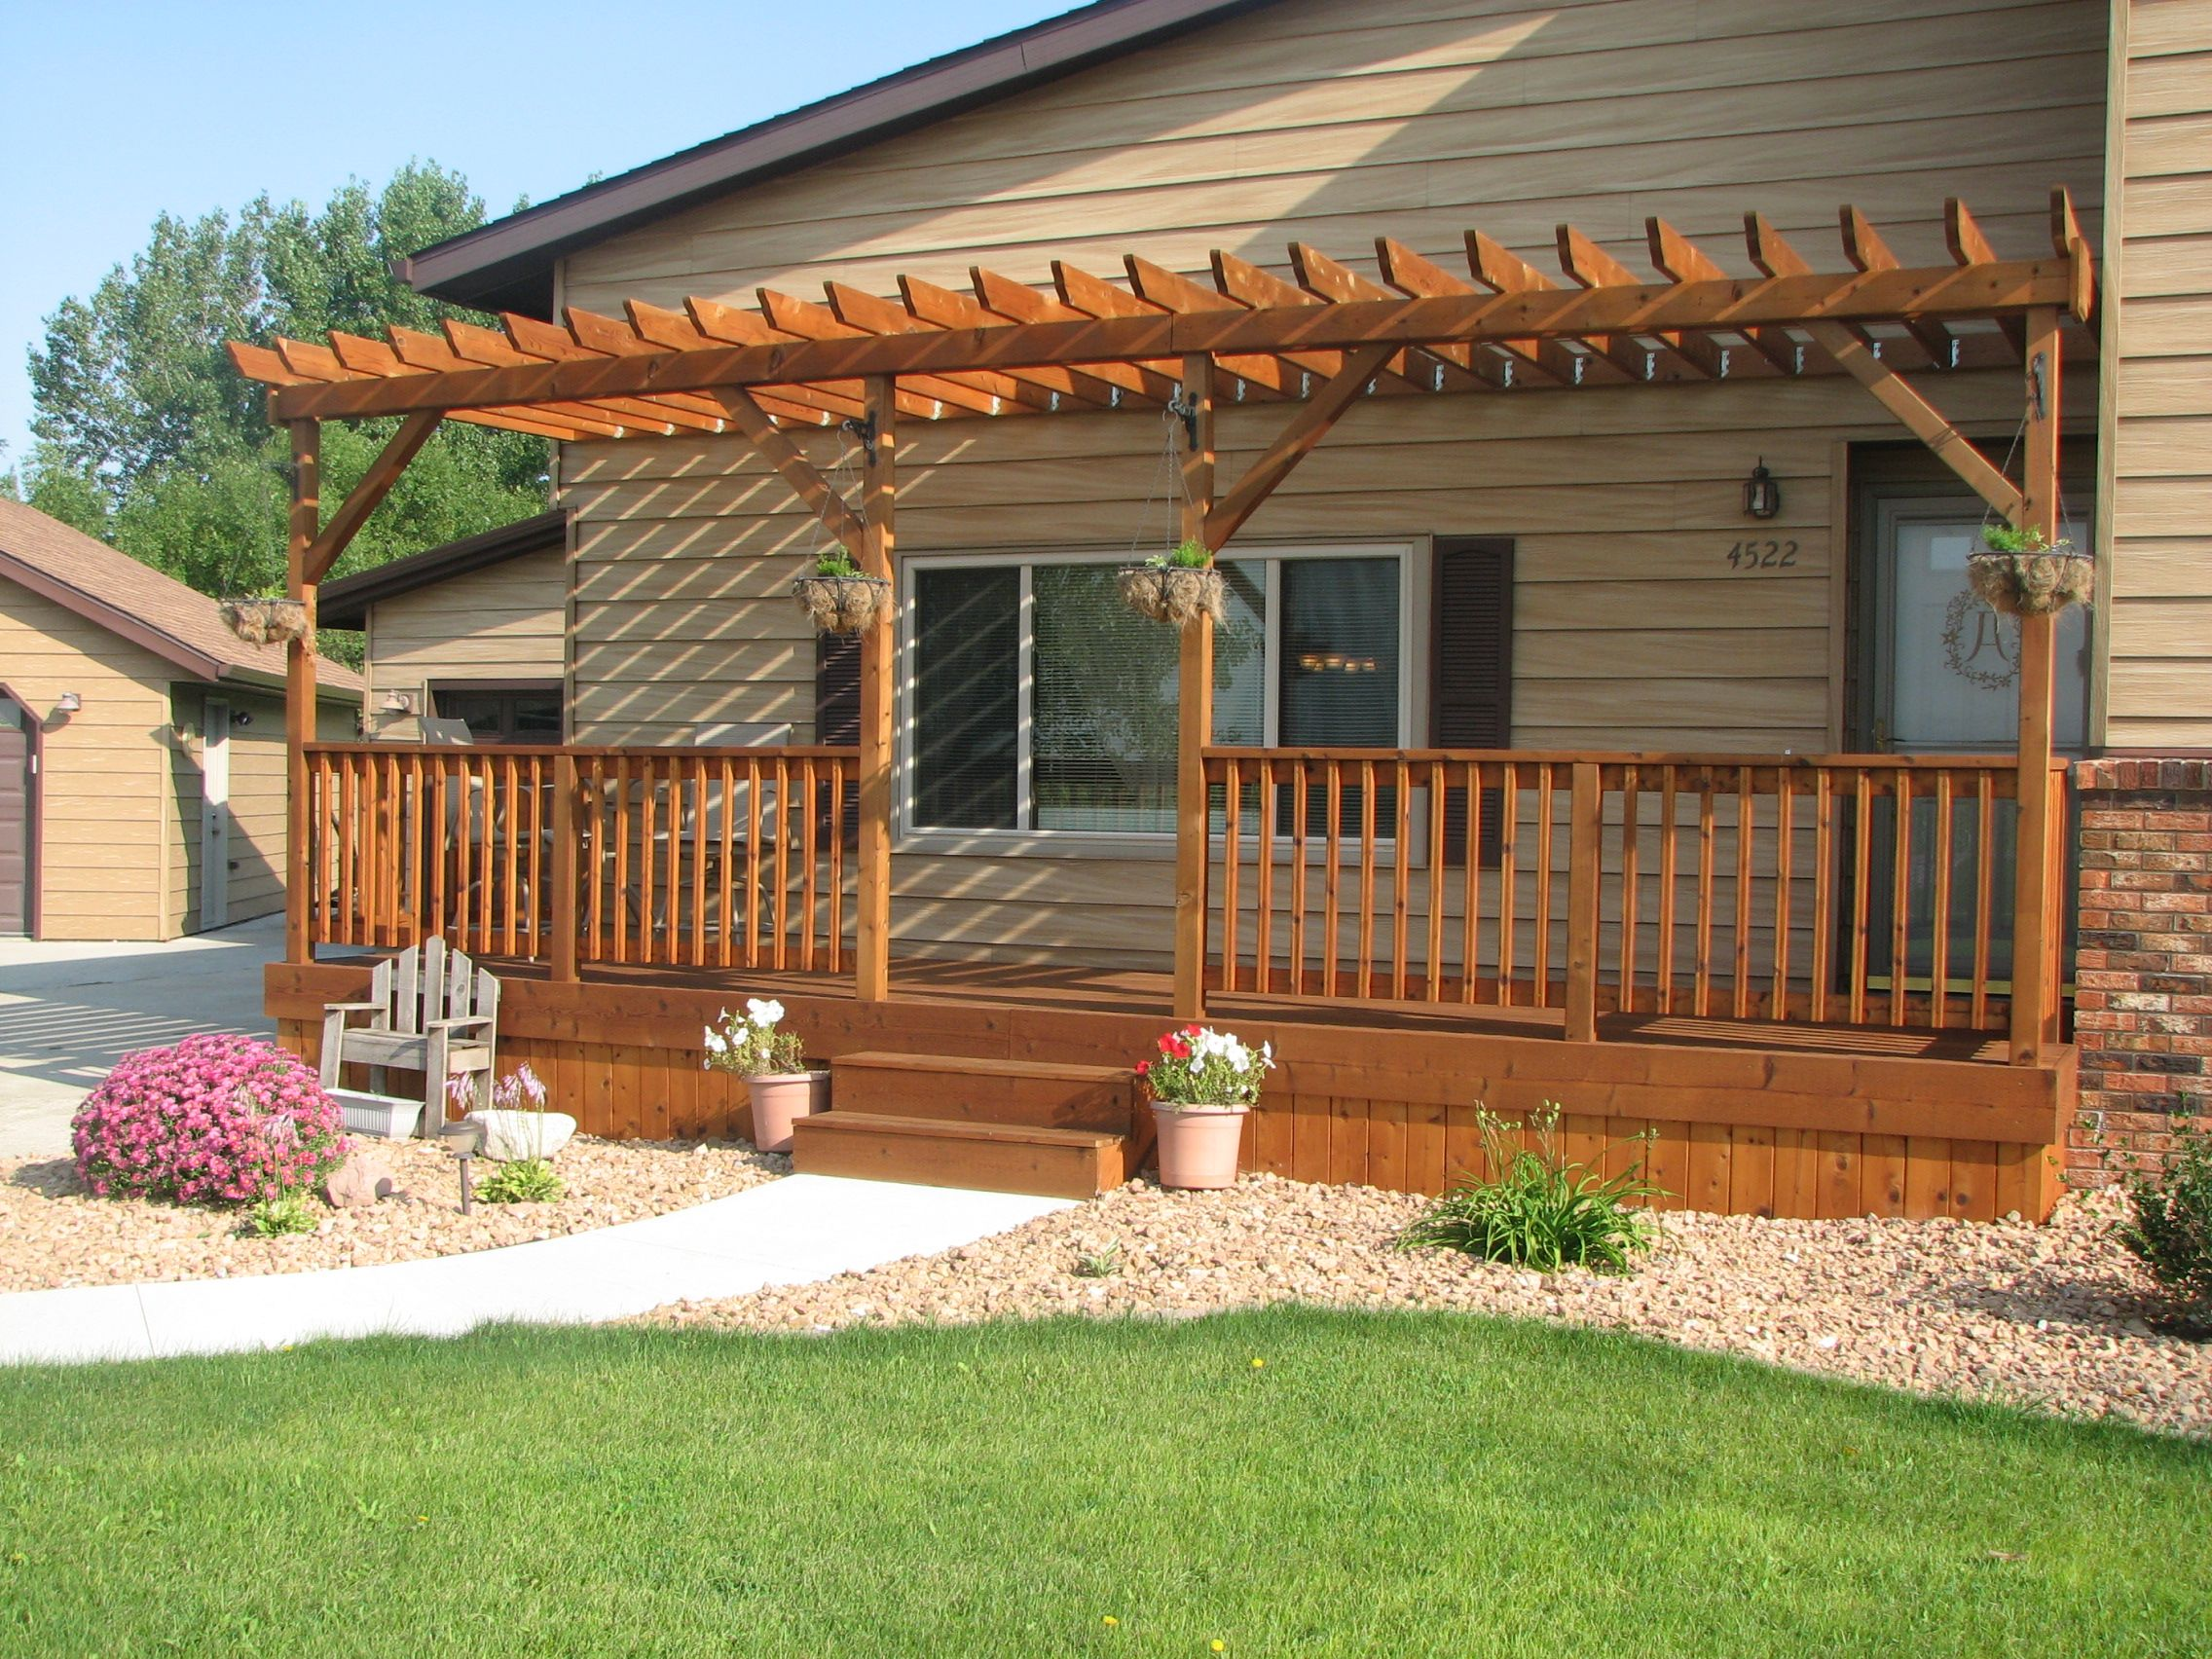 Dreaming is free front porch pergola pergola ideas and for Building a front porch deck